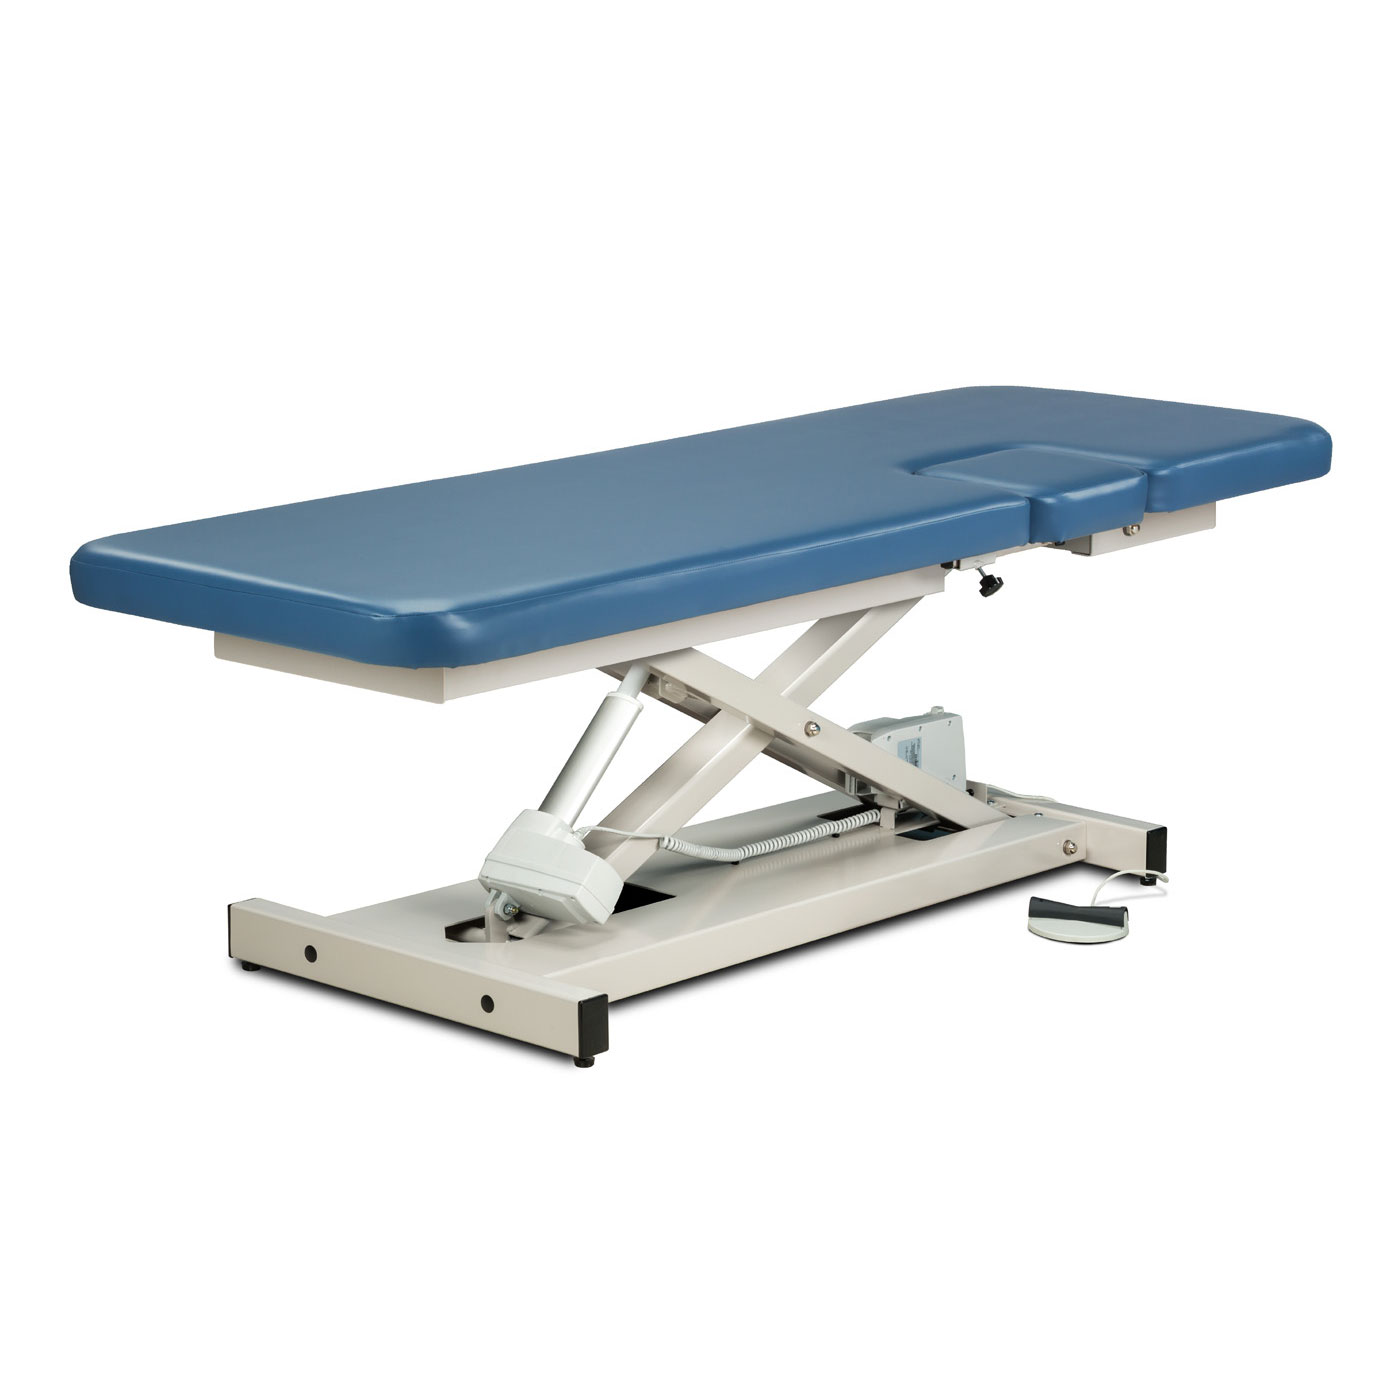 Clinton open base, power imaging table with window drop